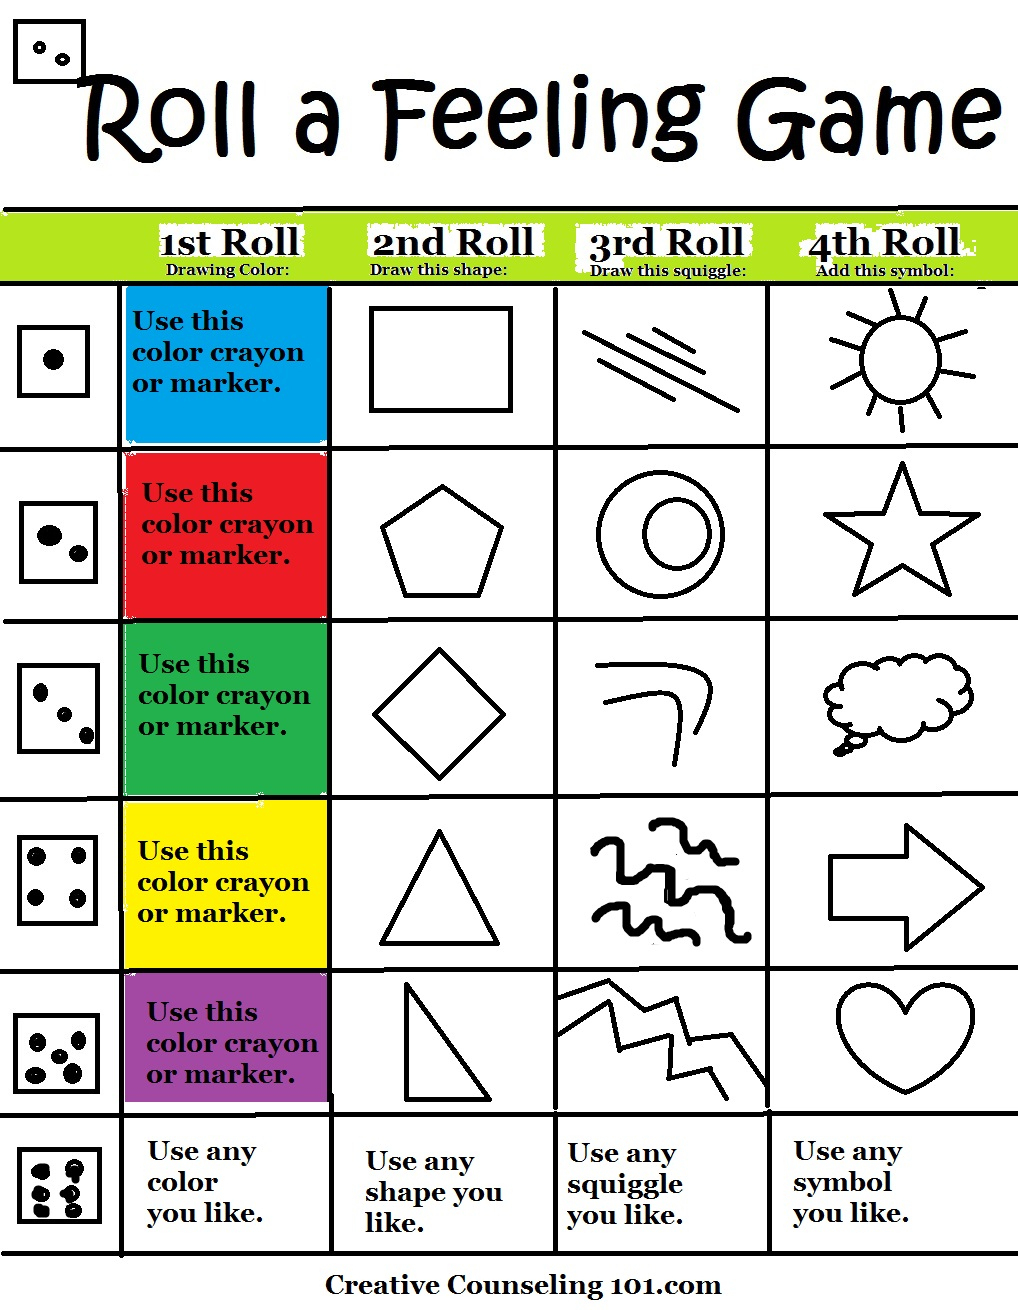 Beyond Art Therapy Roll-A-Feelings Game | Free Printable Counseling Worksheets